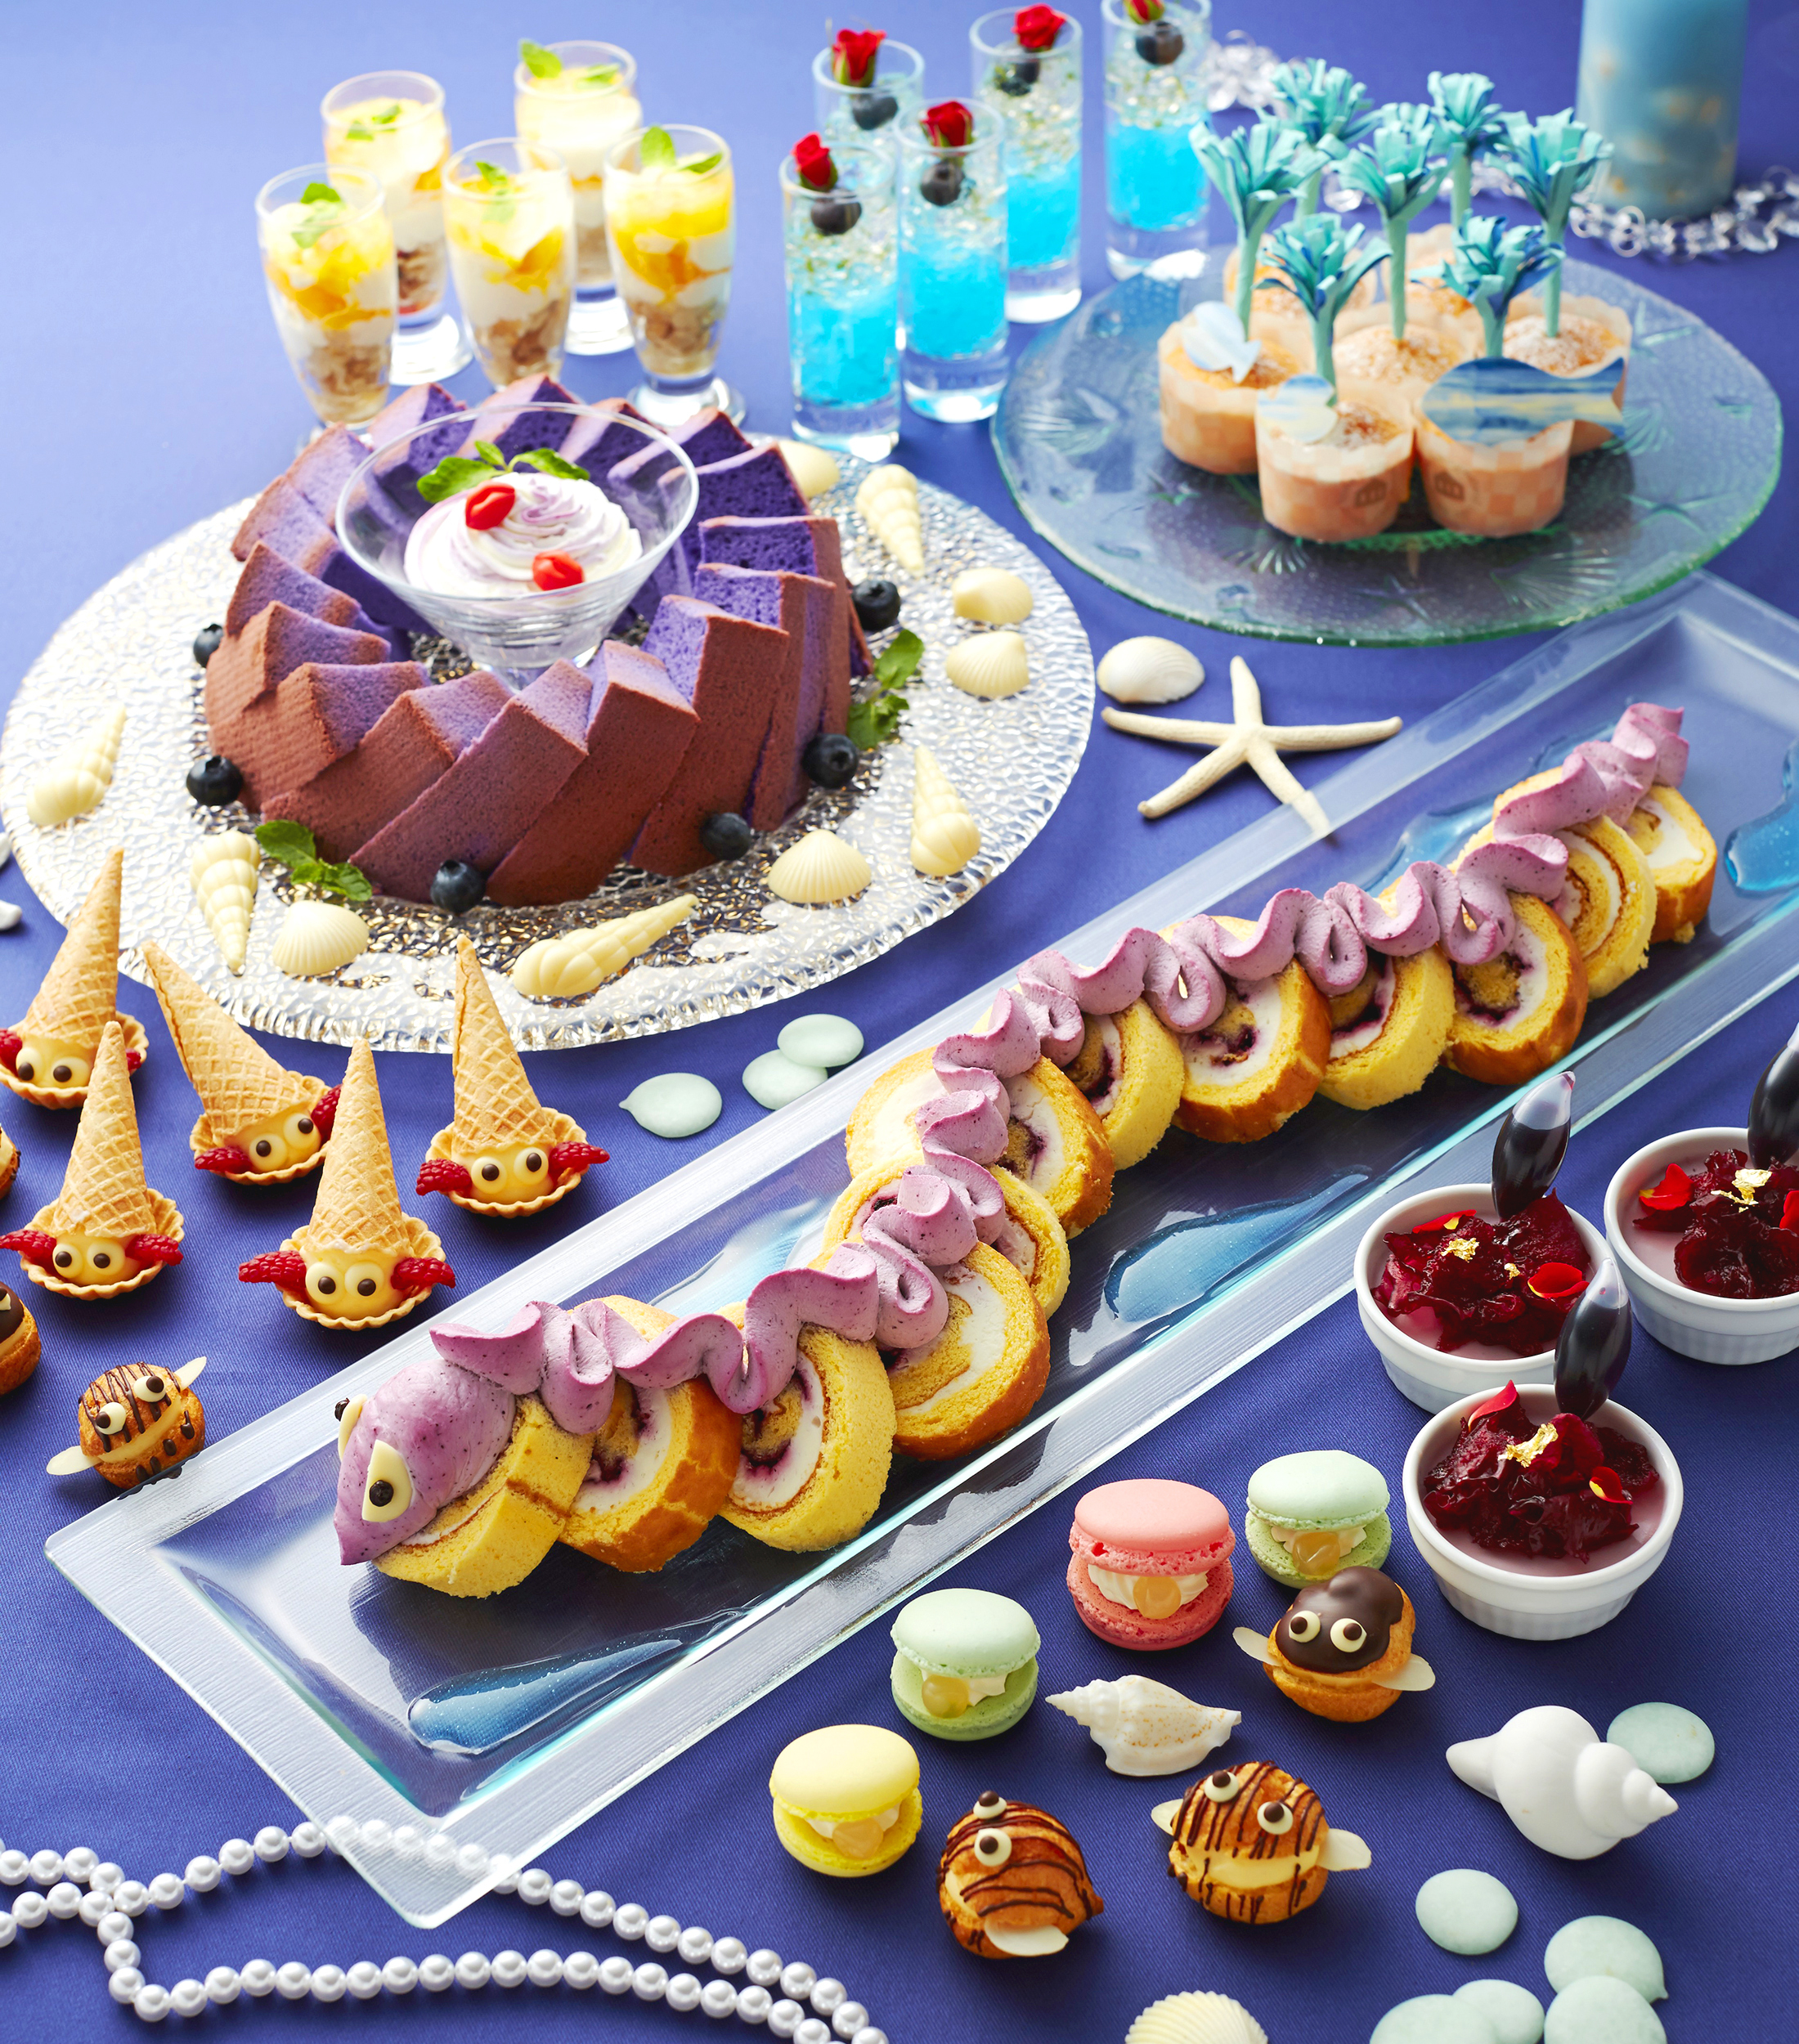 keio plaza hotel tokyo offers little mermaid dessert buffet in commemoration of the 180th. Black Bedroom Furniture Sets. Home Design Ideas